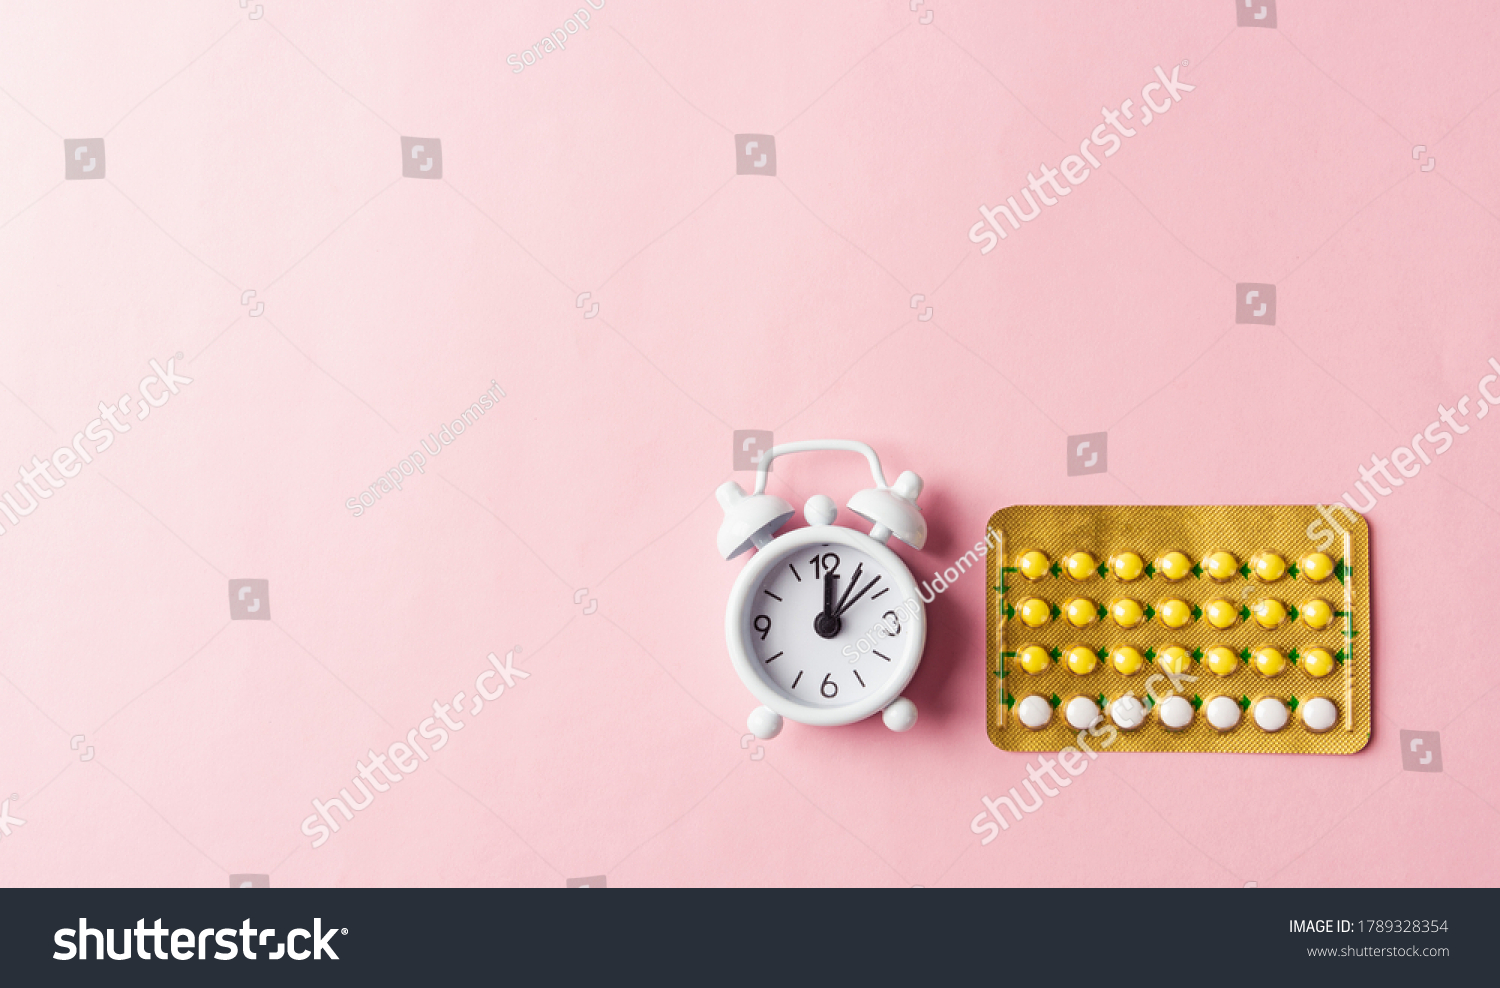 stock-photo-world-sexual-health-or-aids-